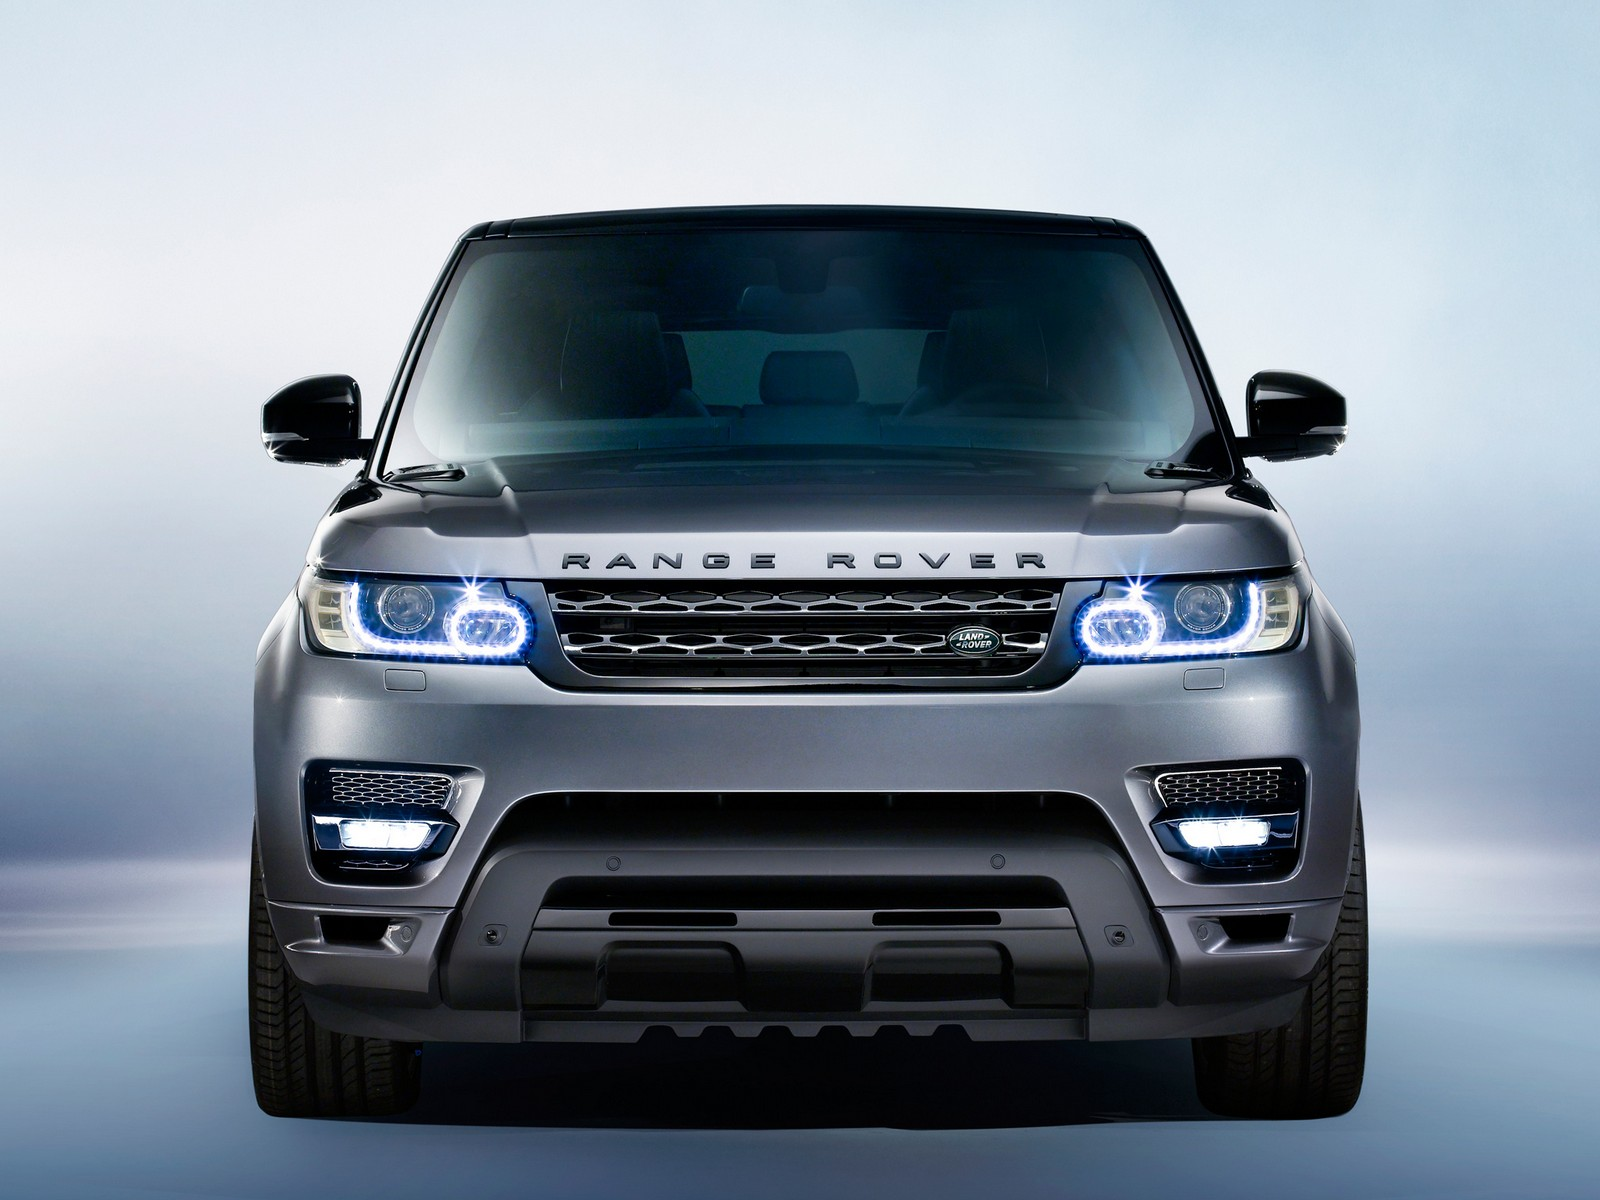 land rover range rover sport. Black Bedroom Furniture Sets. Home Design Ideas